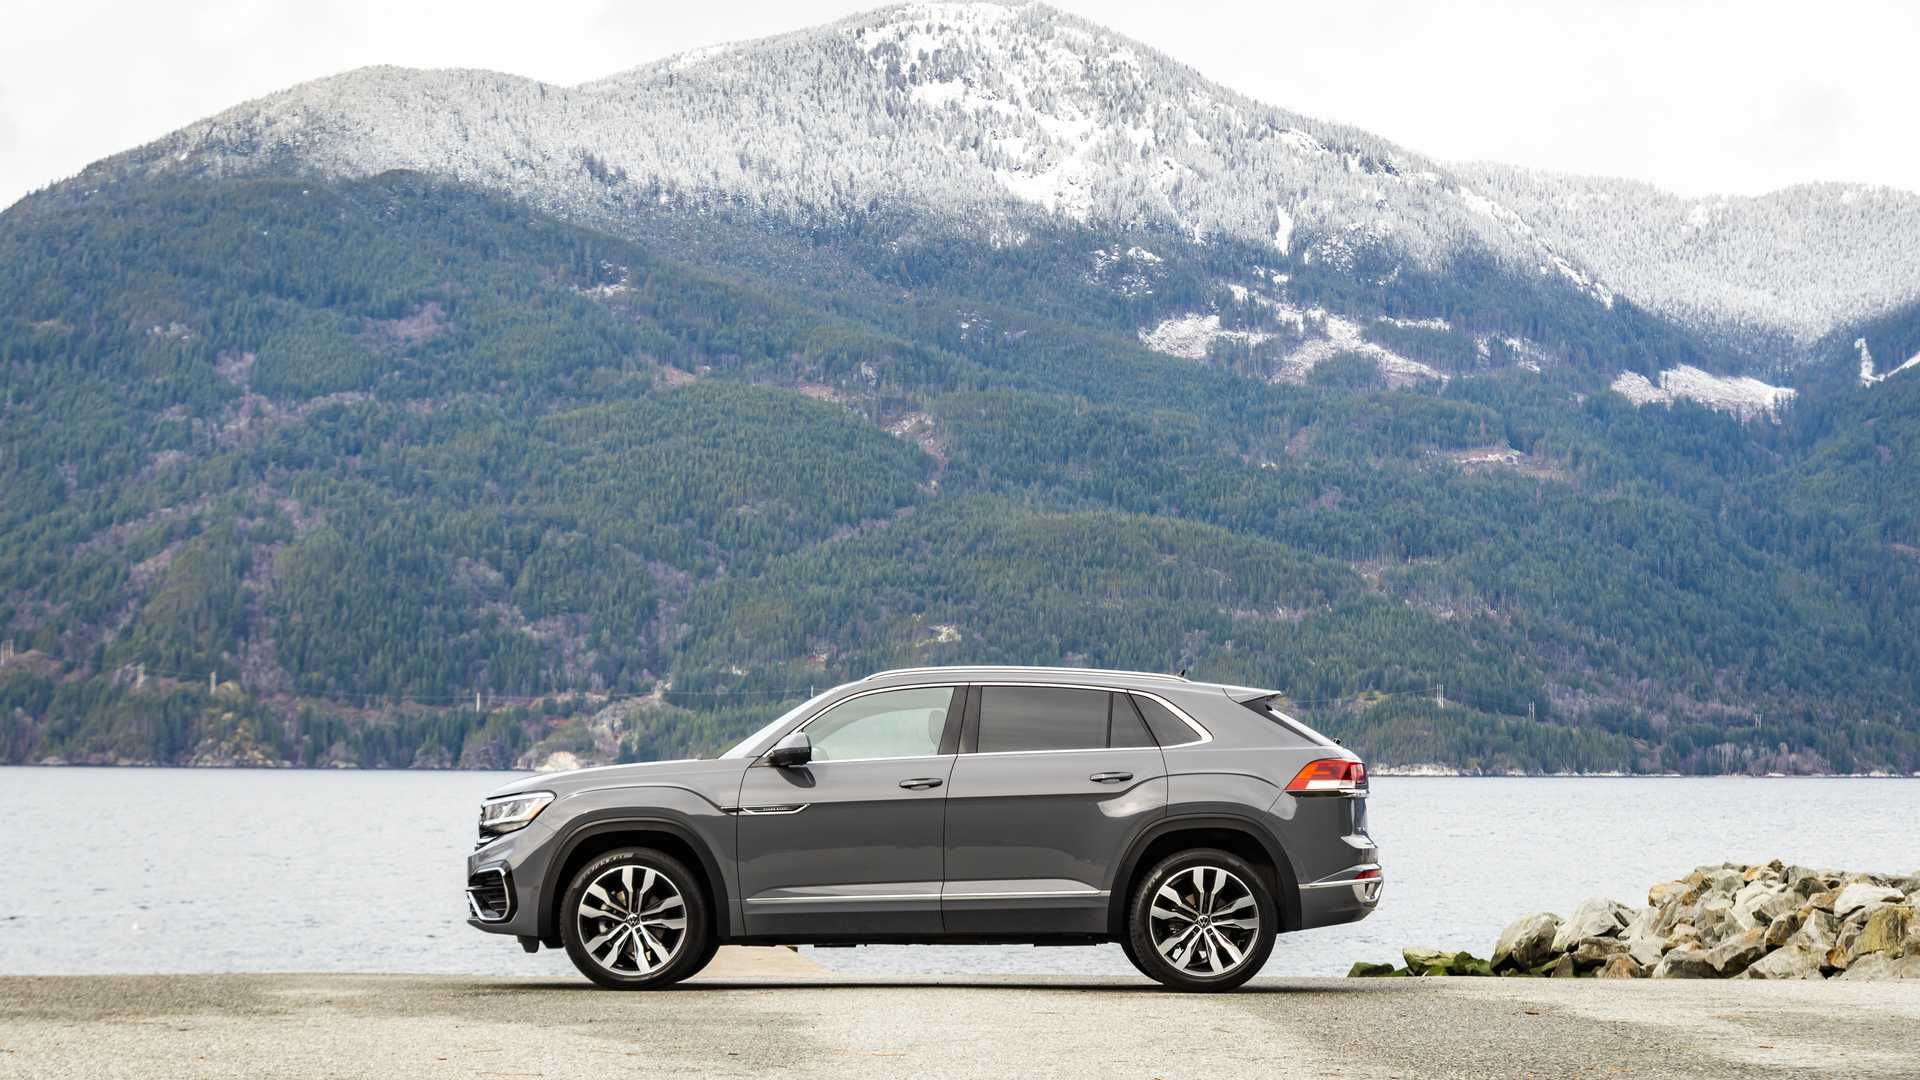 2020 Volkswagen Atlas Cross Sport First Drive Review Trimming Down To Two Rows In 2020 Volkswagen First Drive Sport One